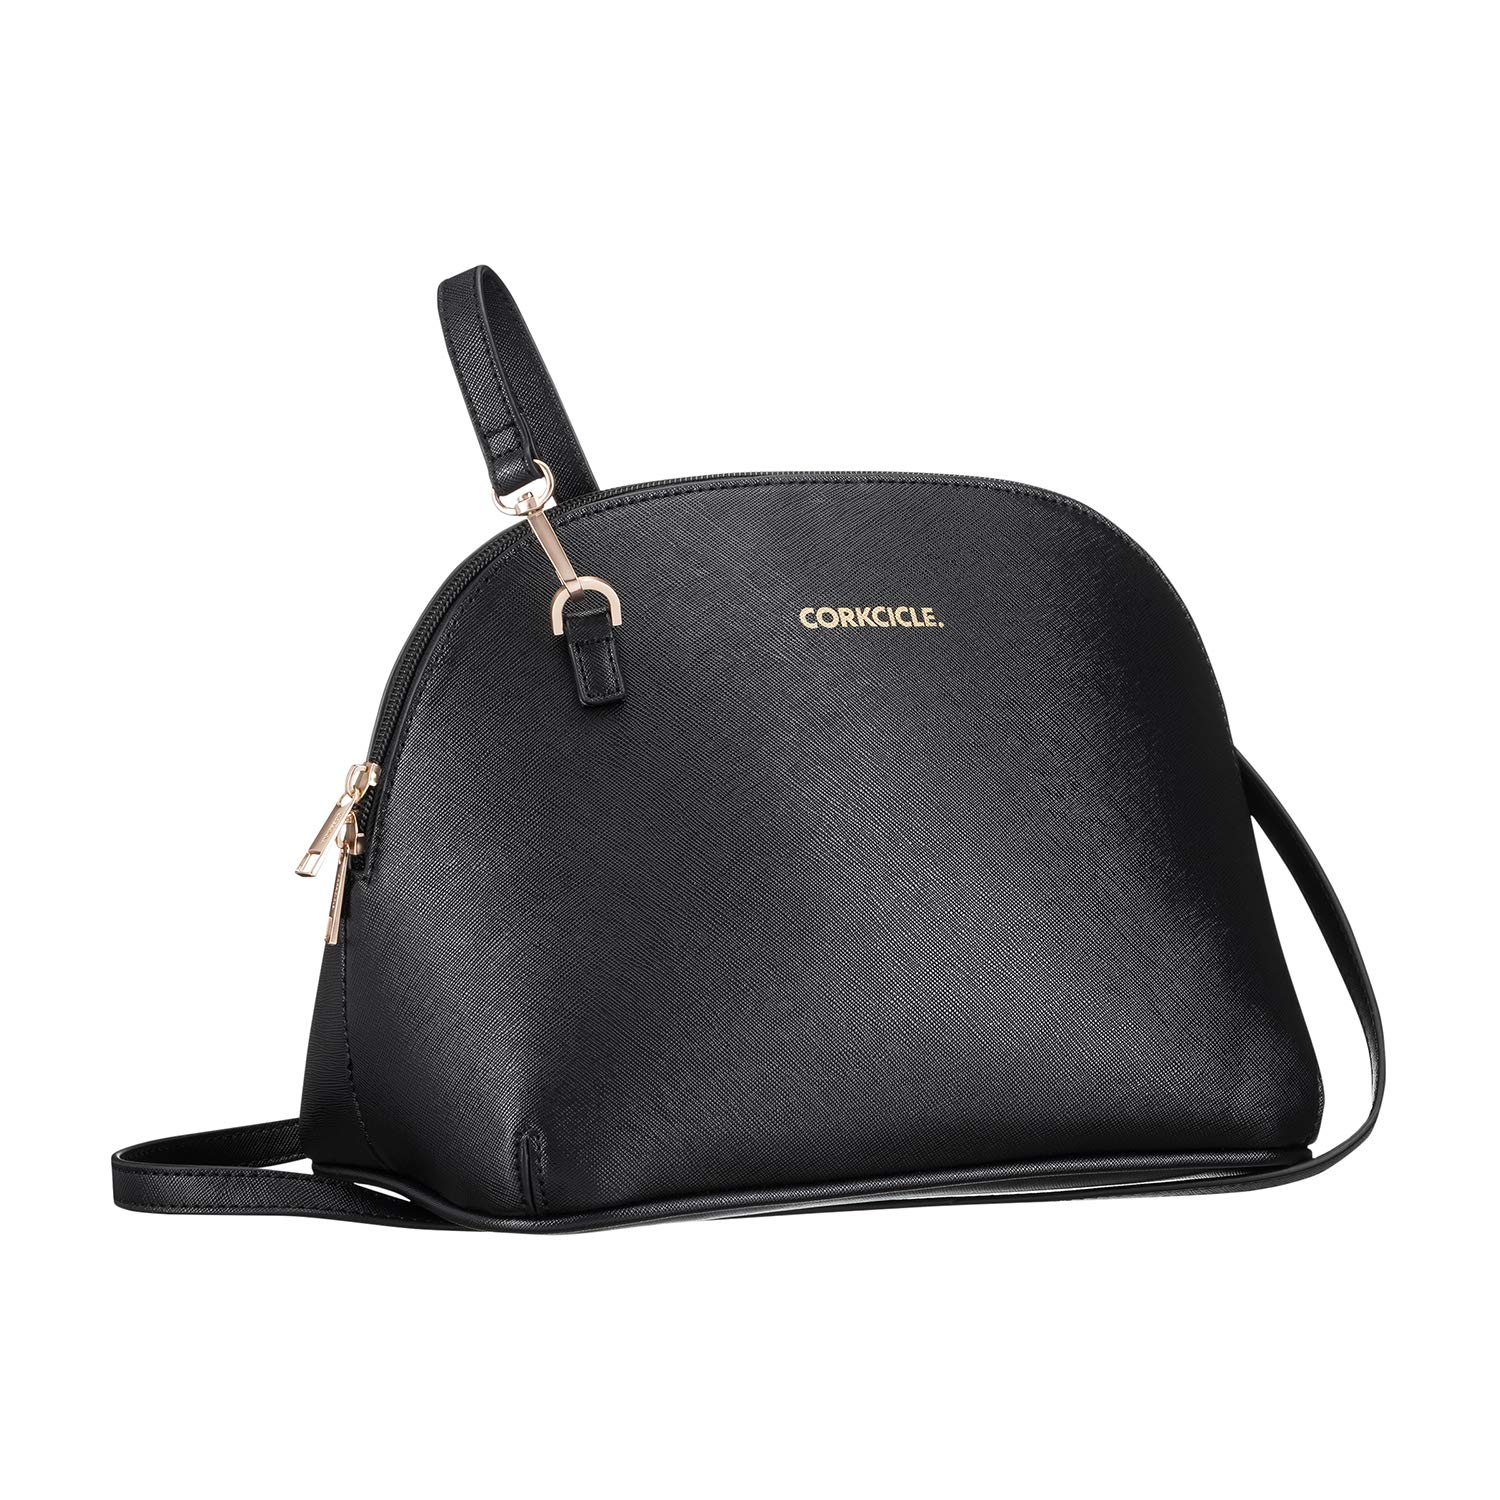 Corkcicle Lunch Box - Adair Crossbody, Black by Corkcicle